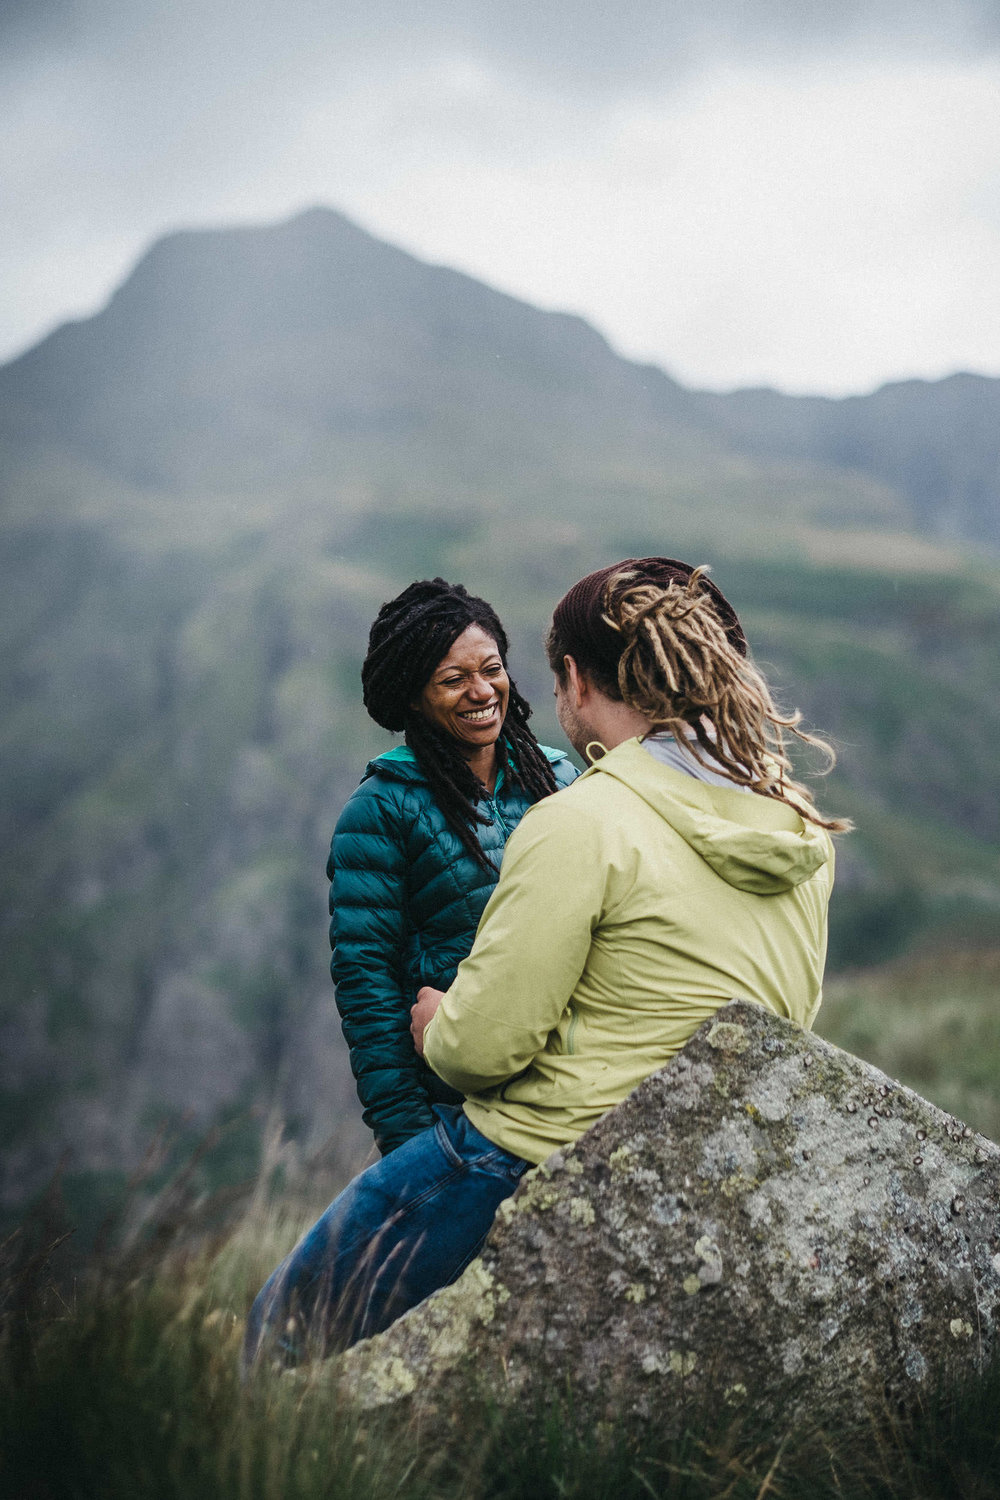 Couple with dreadlocks laughing while sat on a rock